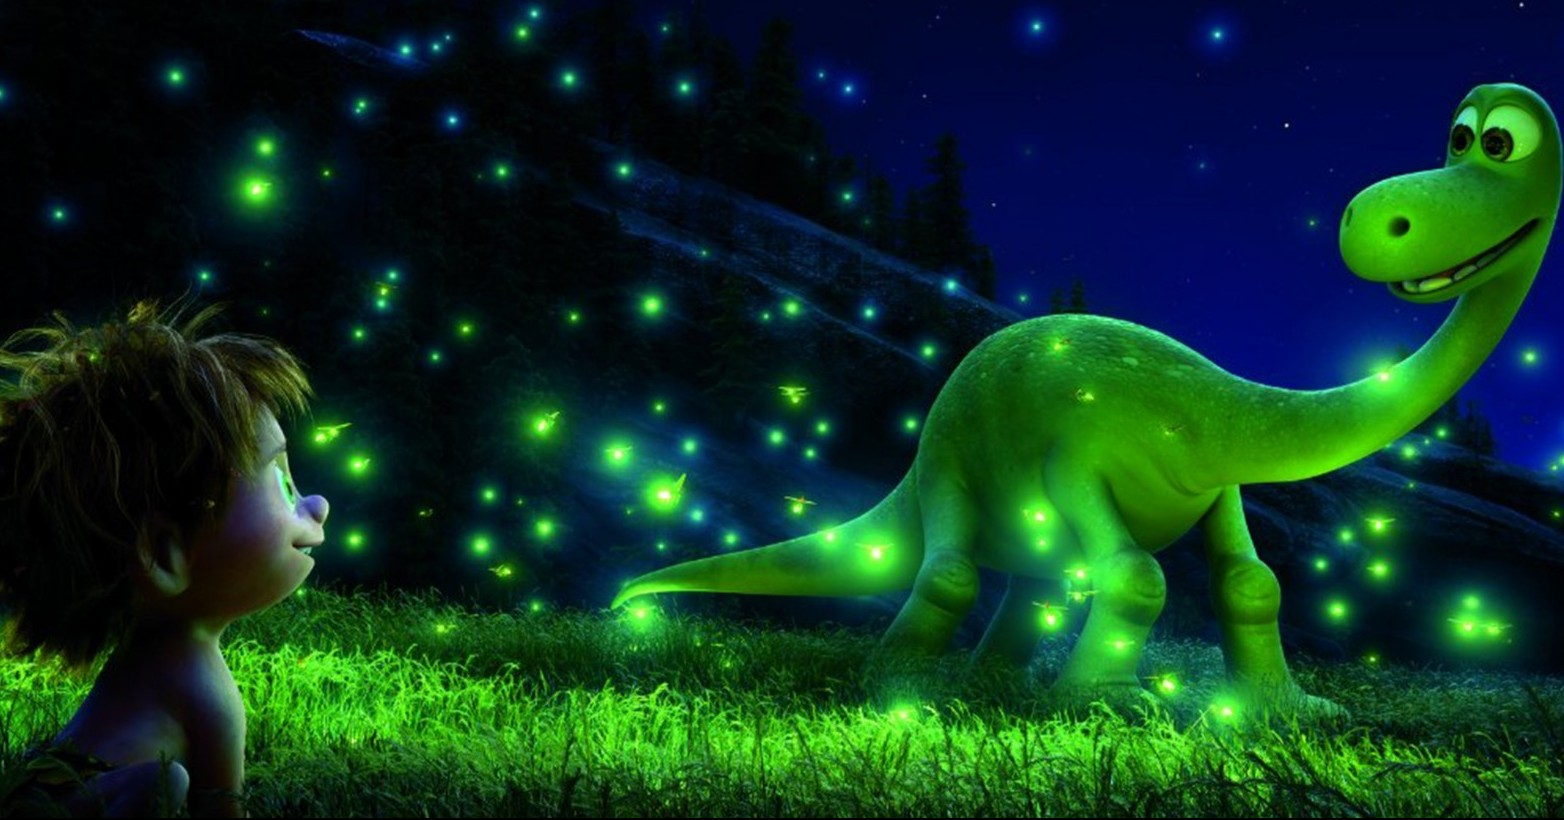 33. The Good Dinosaur